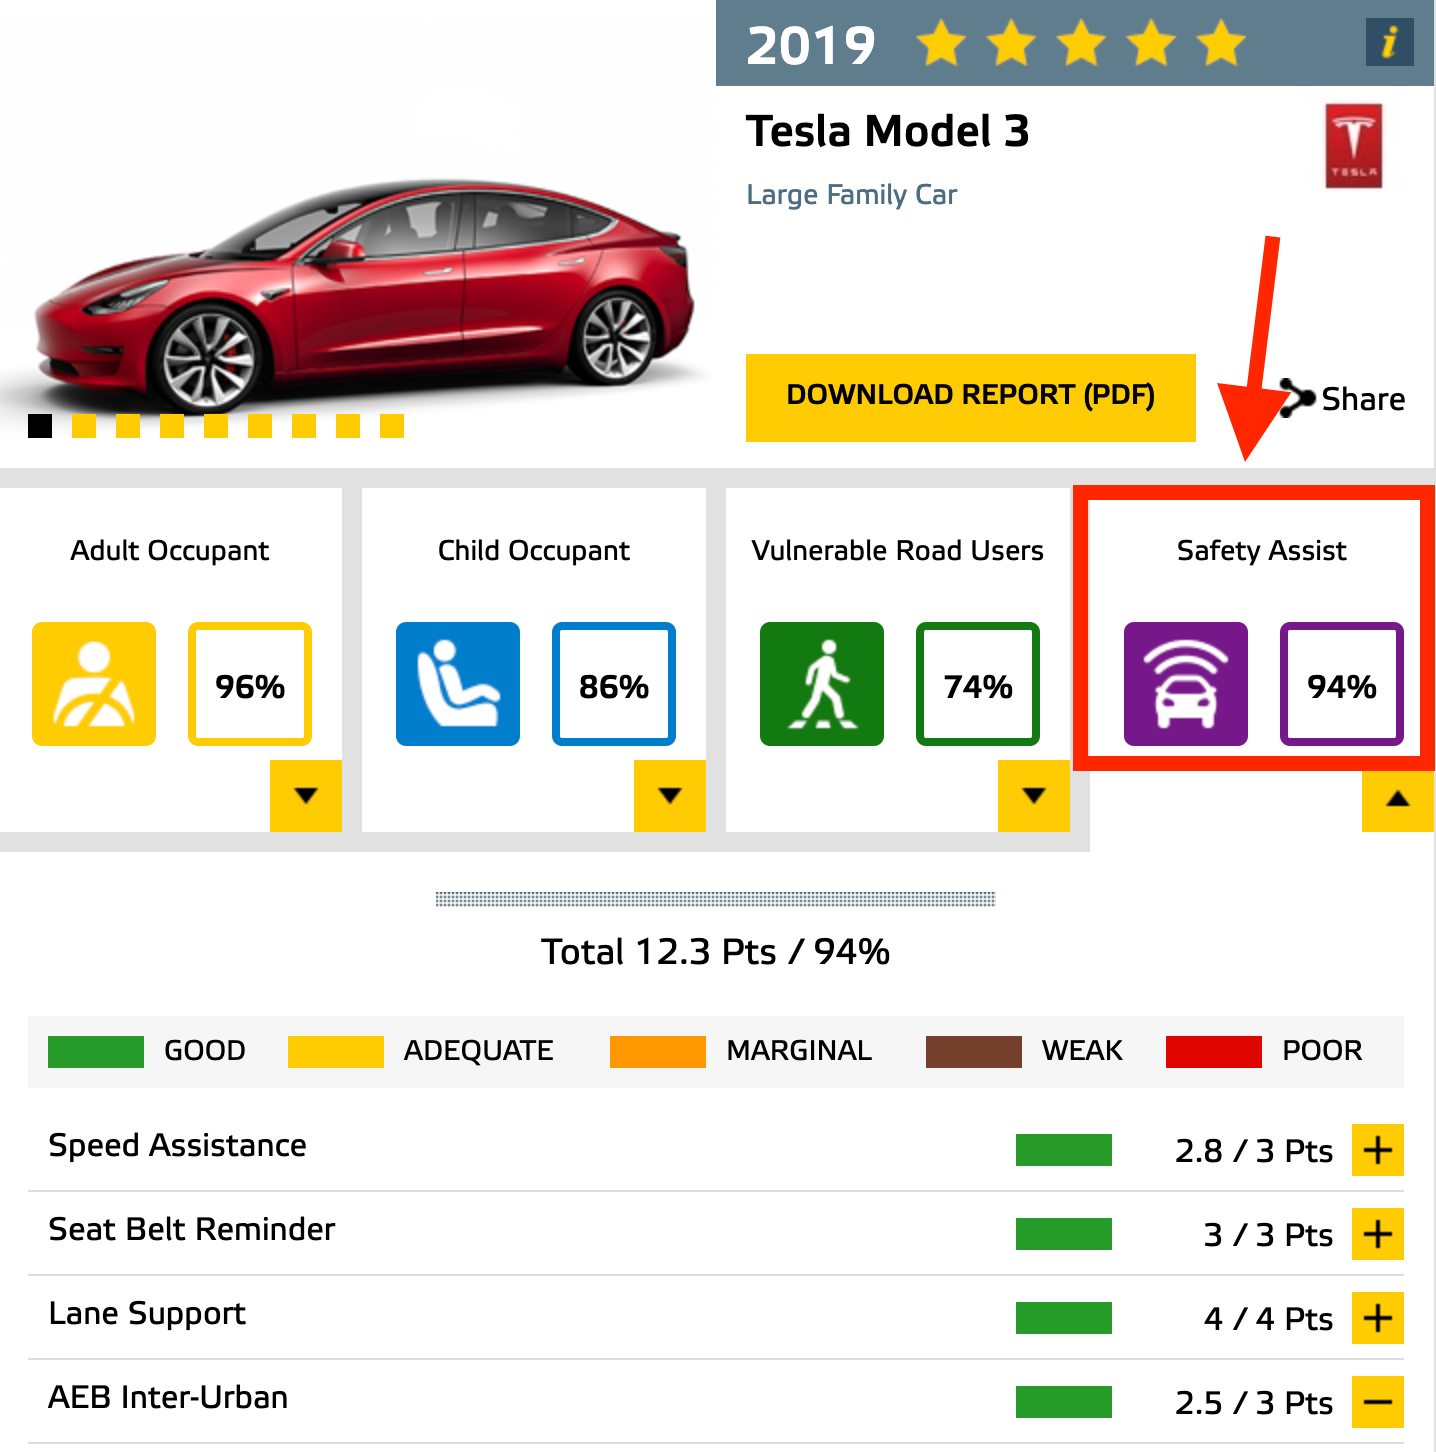 Tesla-Model-3-Euro-NCAP-Driver-Assist-Rating